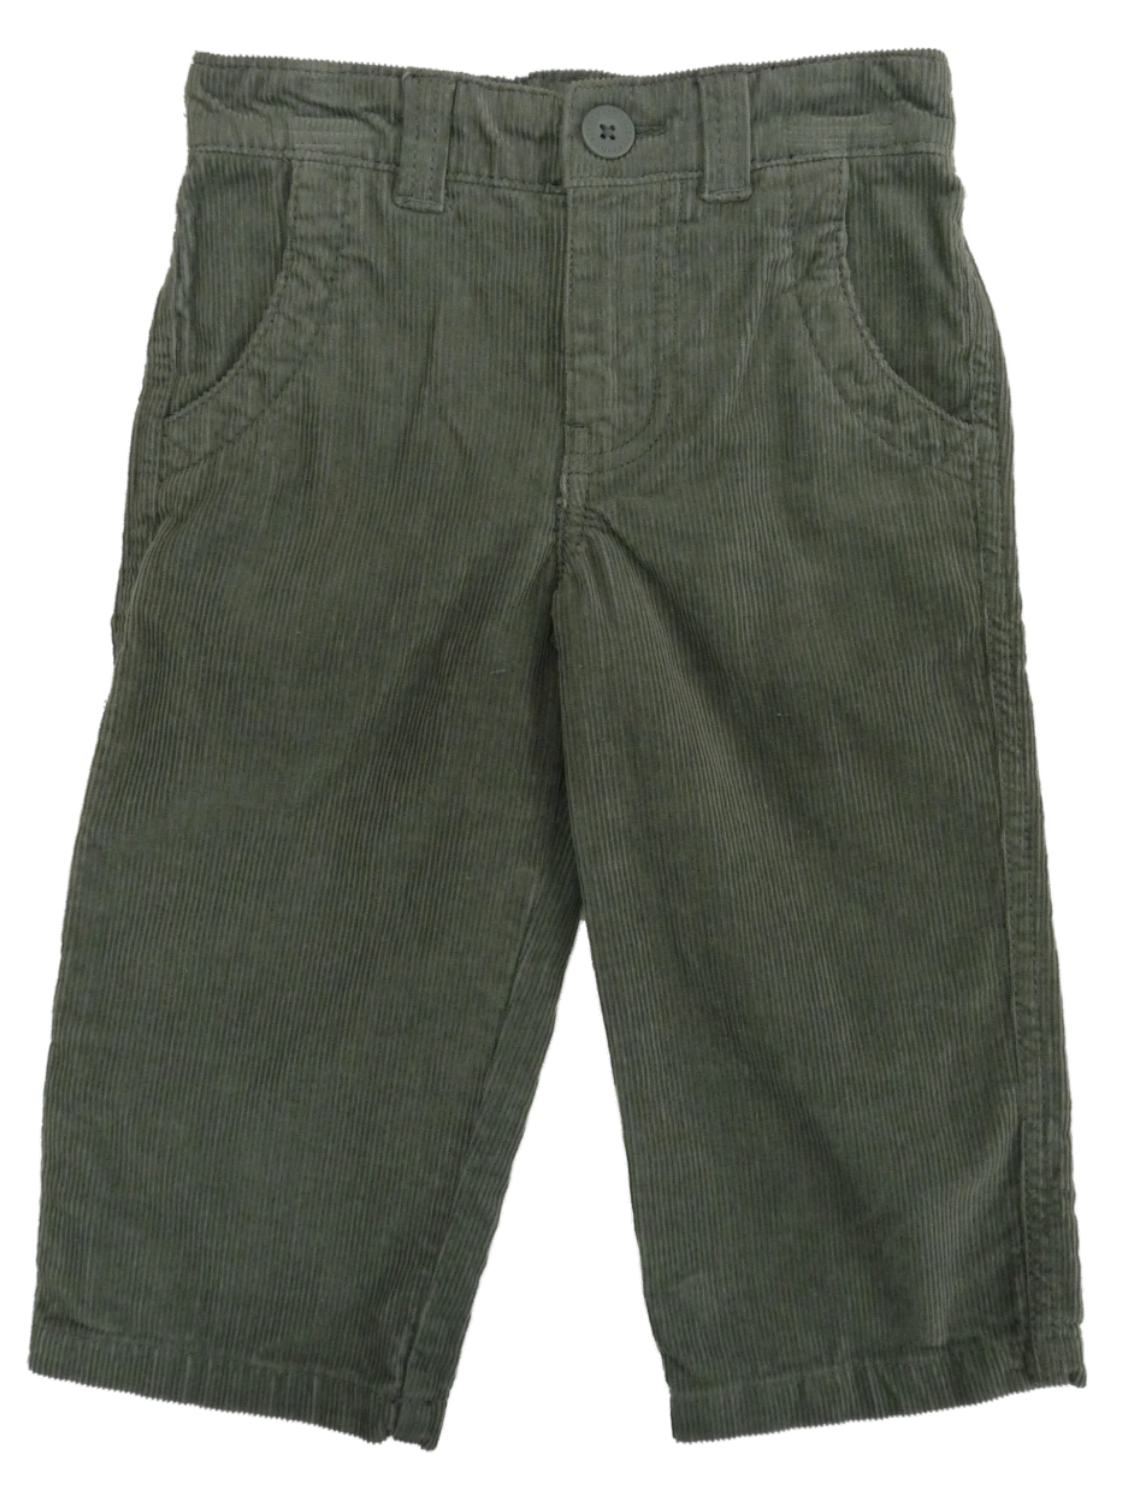 Healthtex Infant /& Toddler Boys Gray Corduory Pants